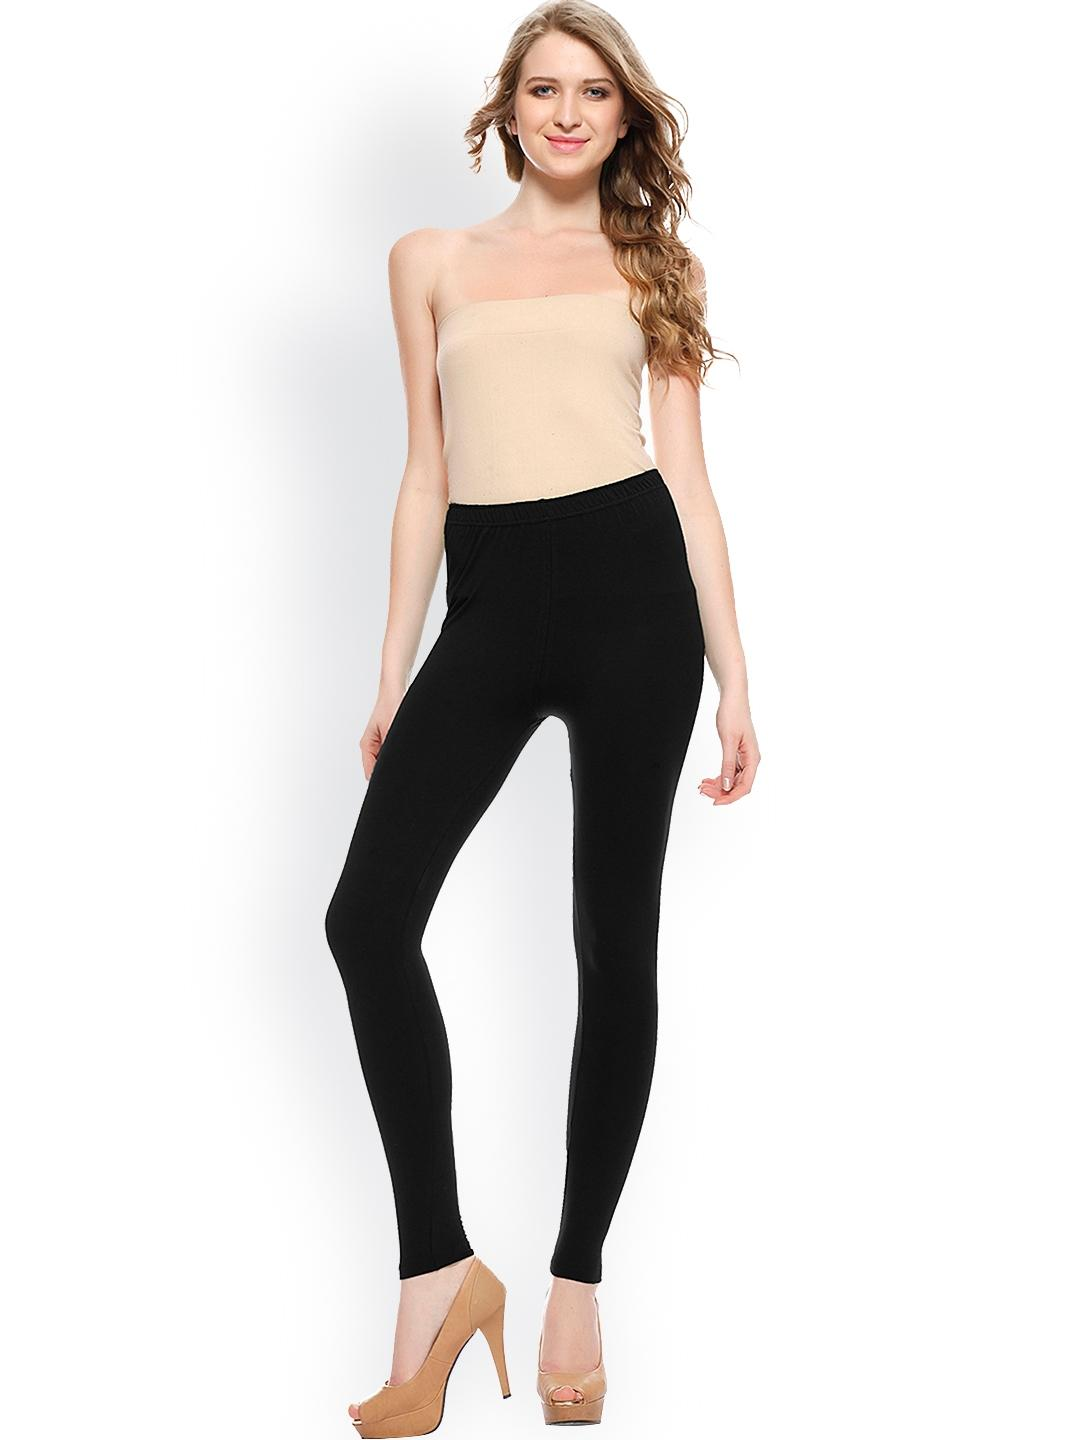 Women's Black Viscose Comfortable Tights. KTY-T244